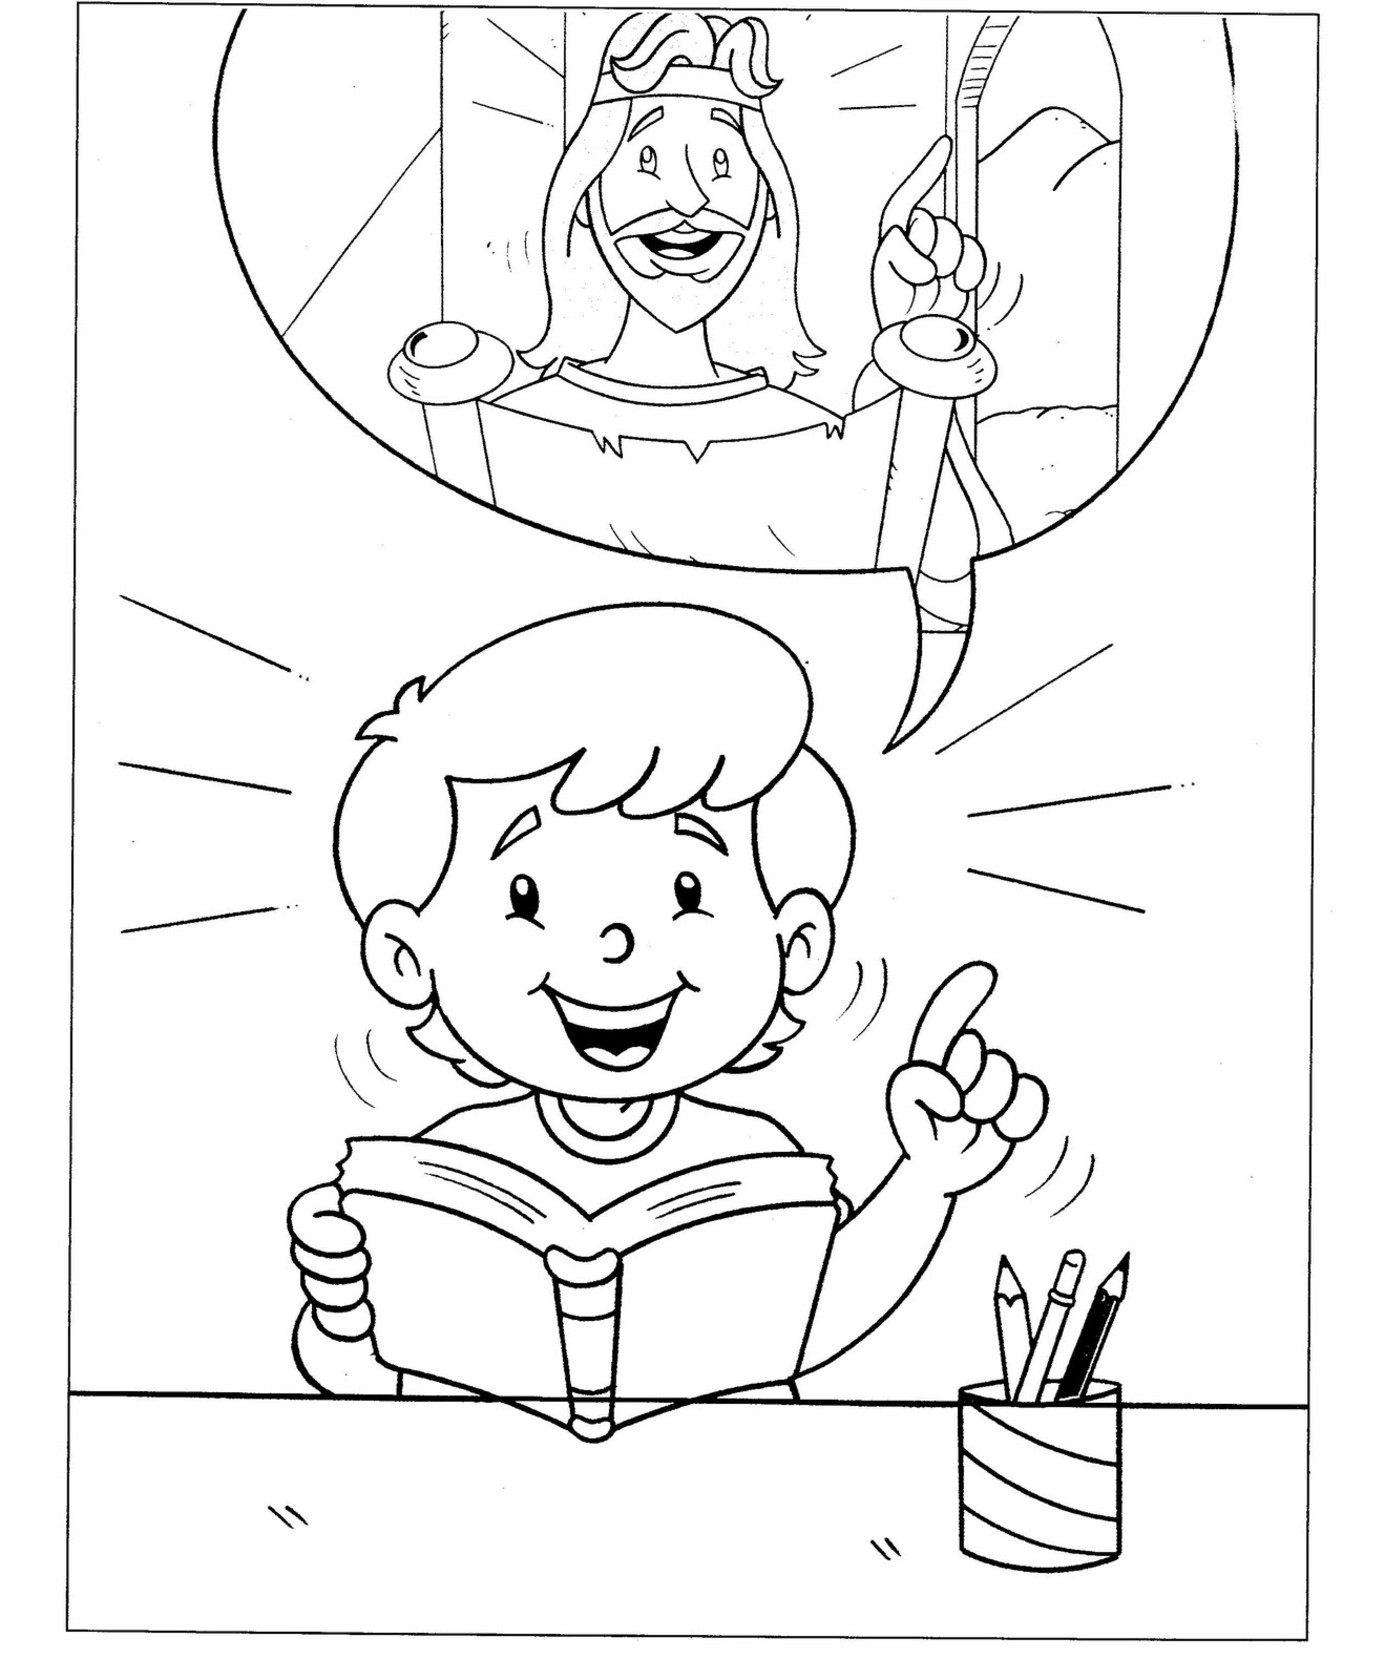 christian coloring pages 2 - Christian Coloring Pages Print